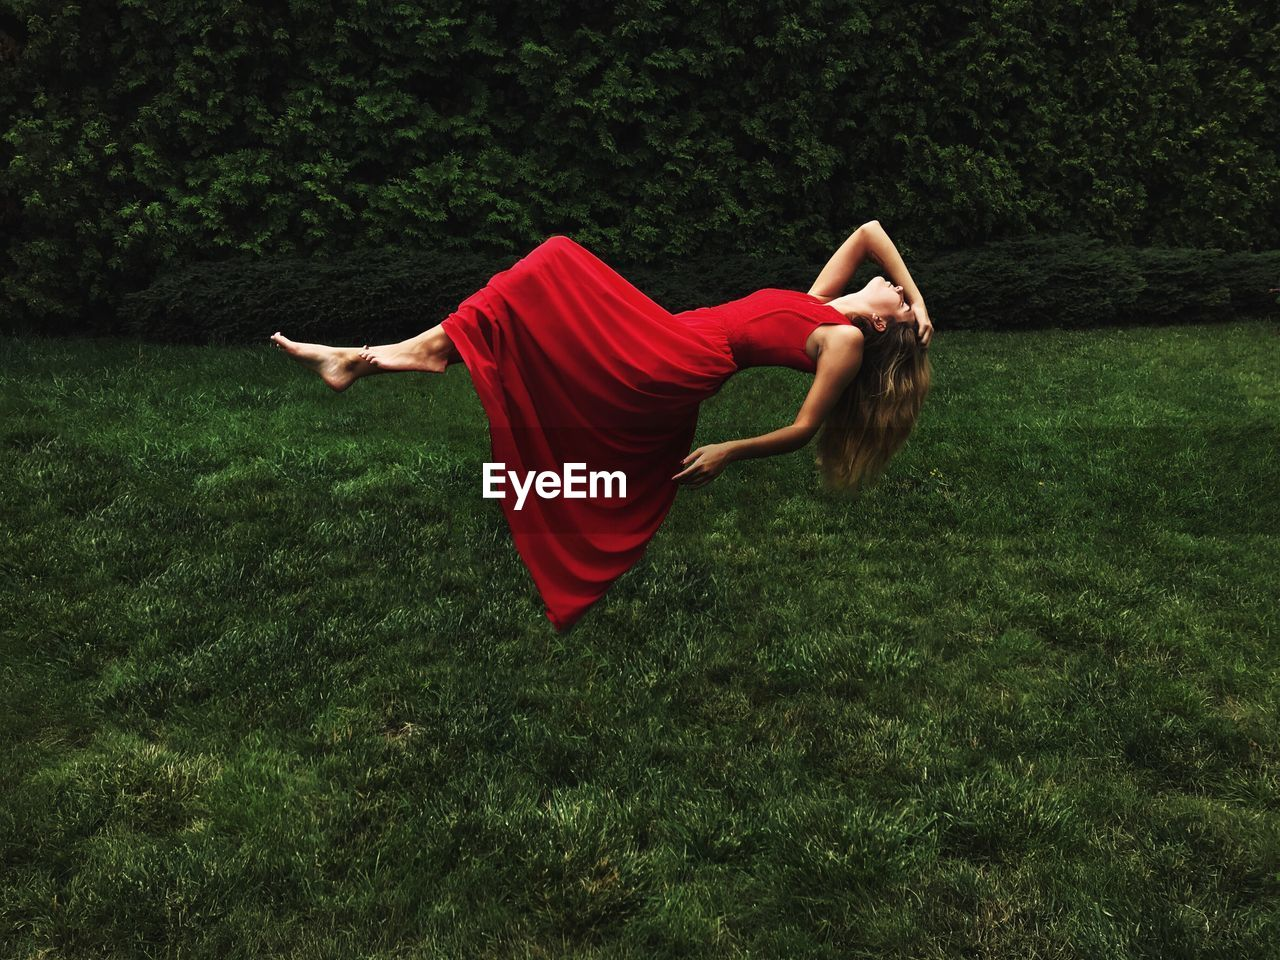 Digital Composite Image Of Woman Wearing Dress While Lying In Air Over Field